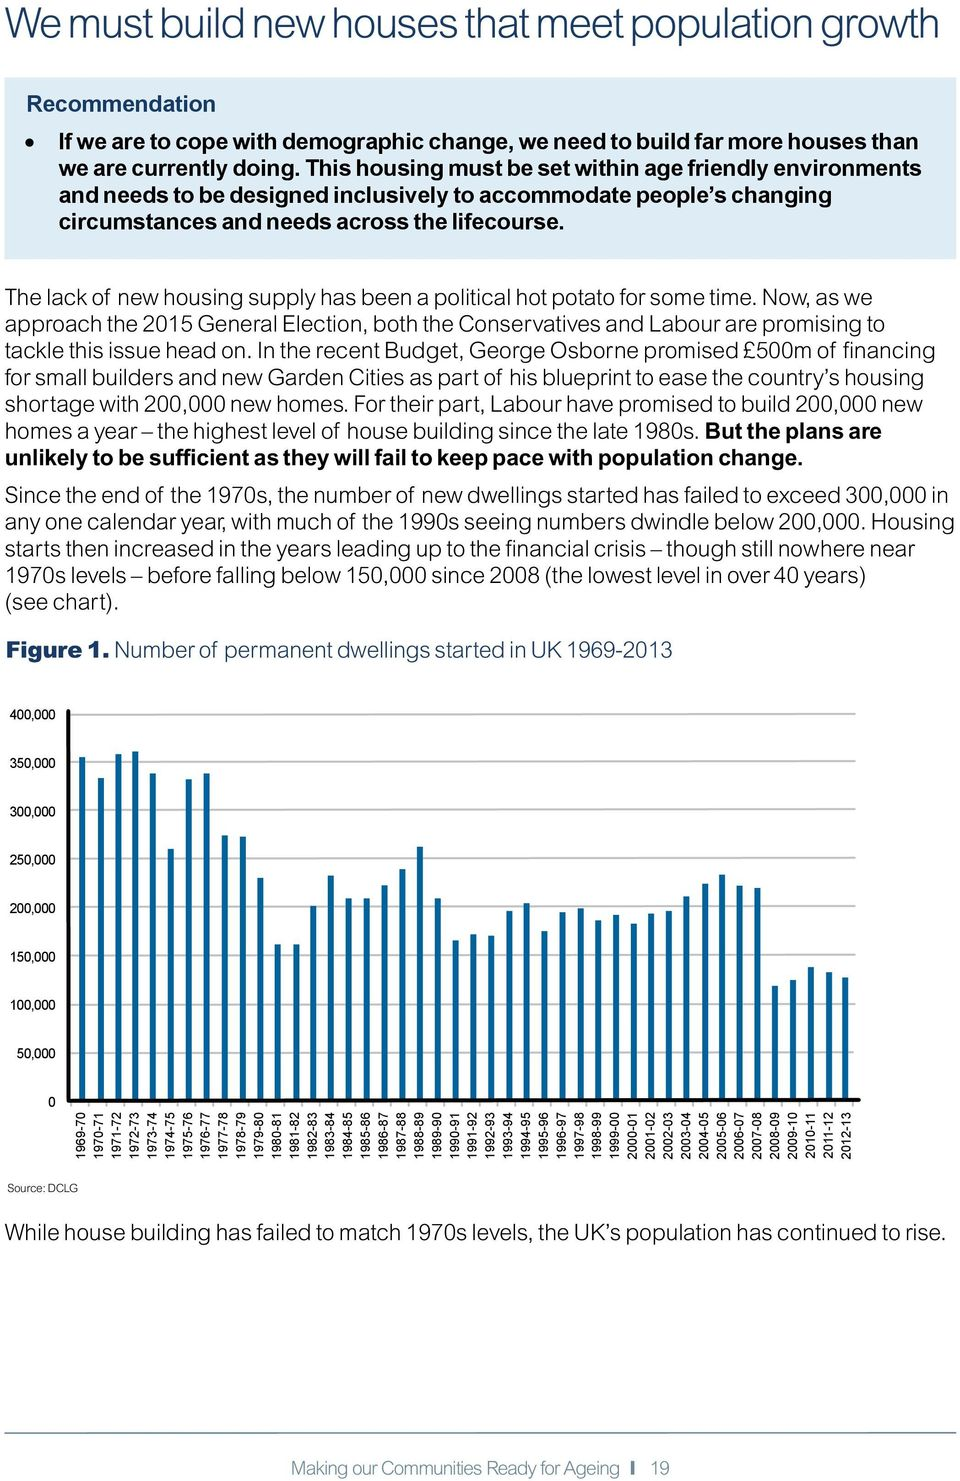 IG1 The lack of new housing supply has been a political hot potato for some time.